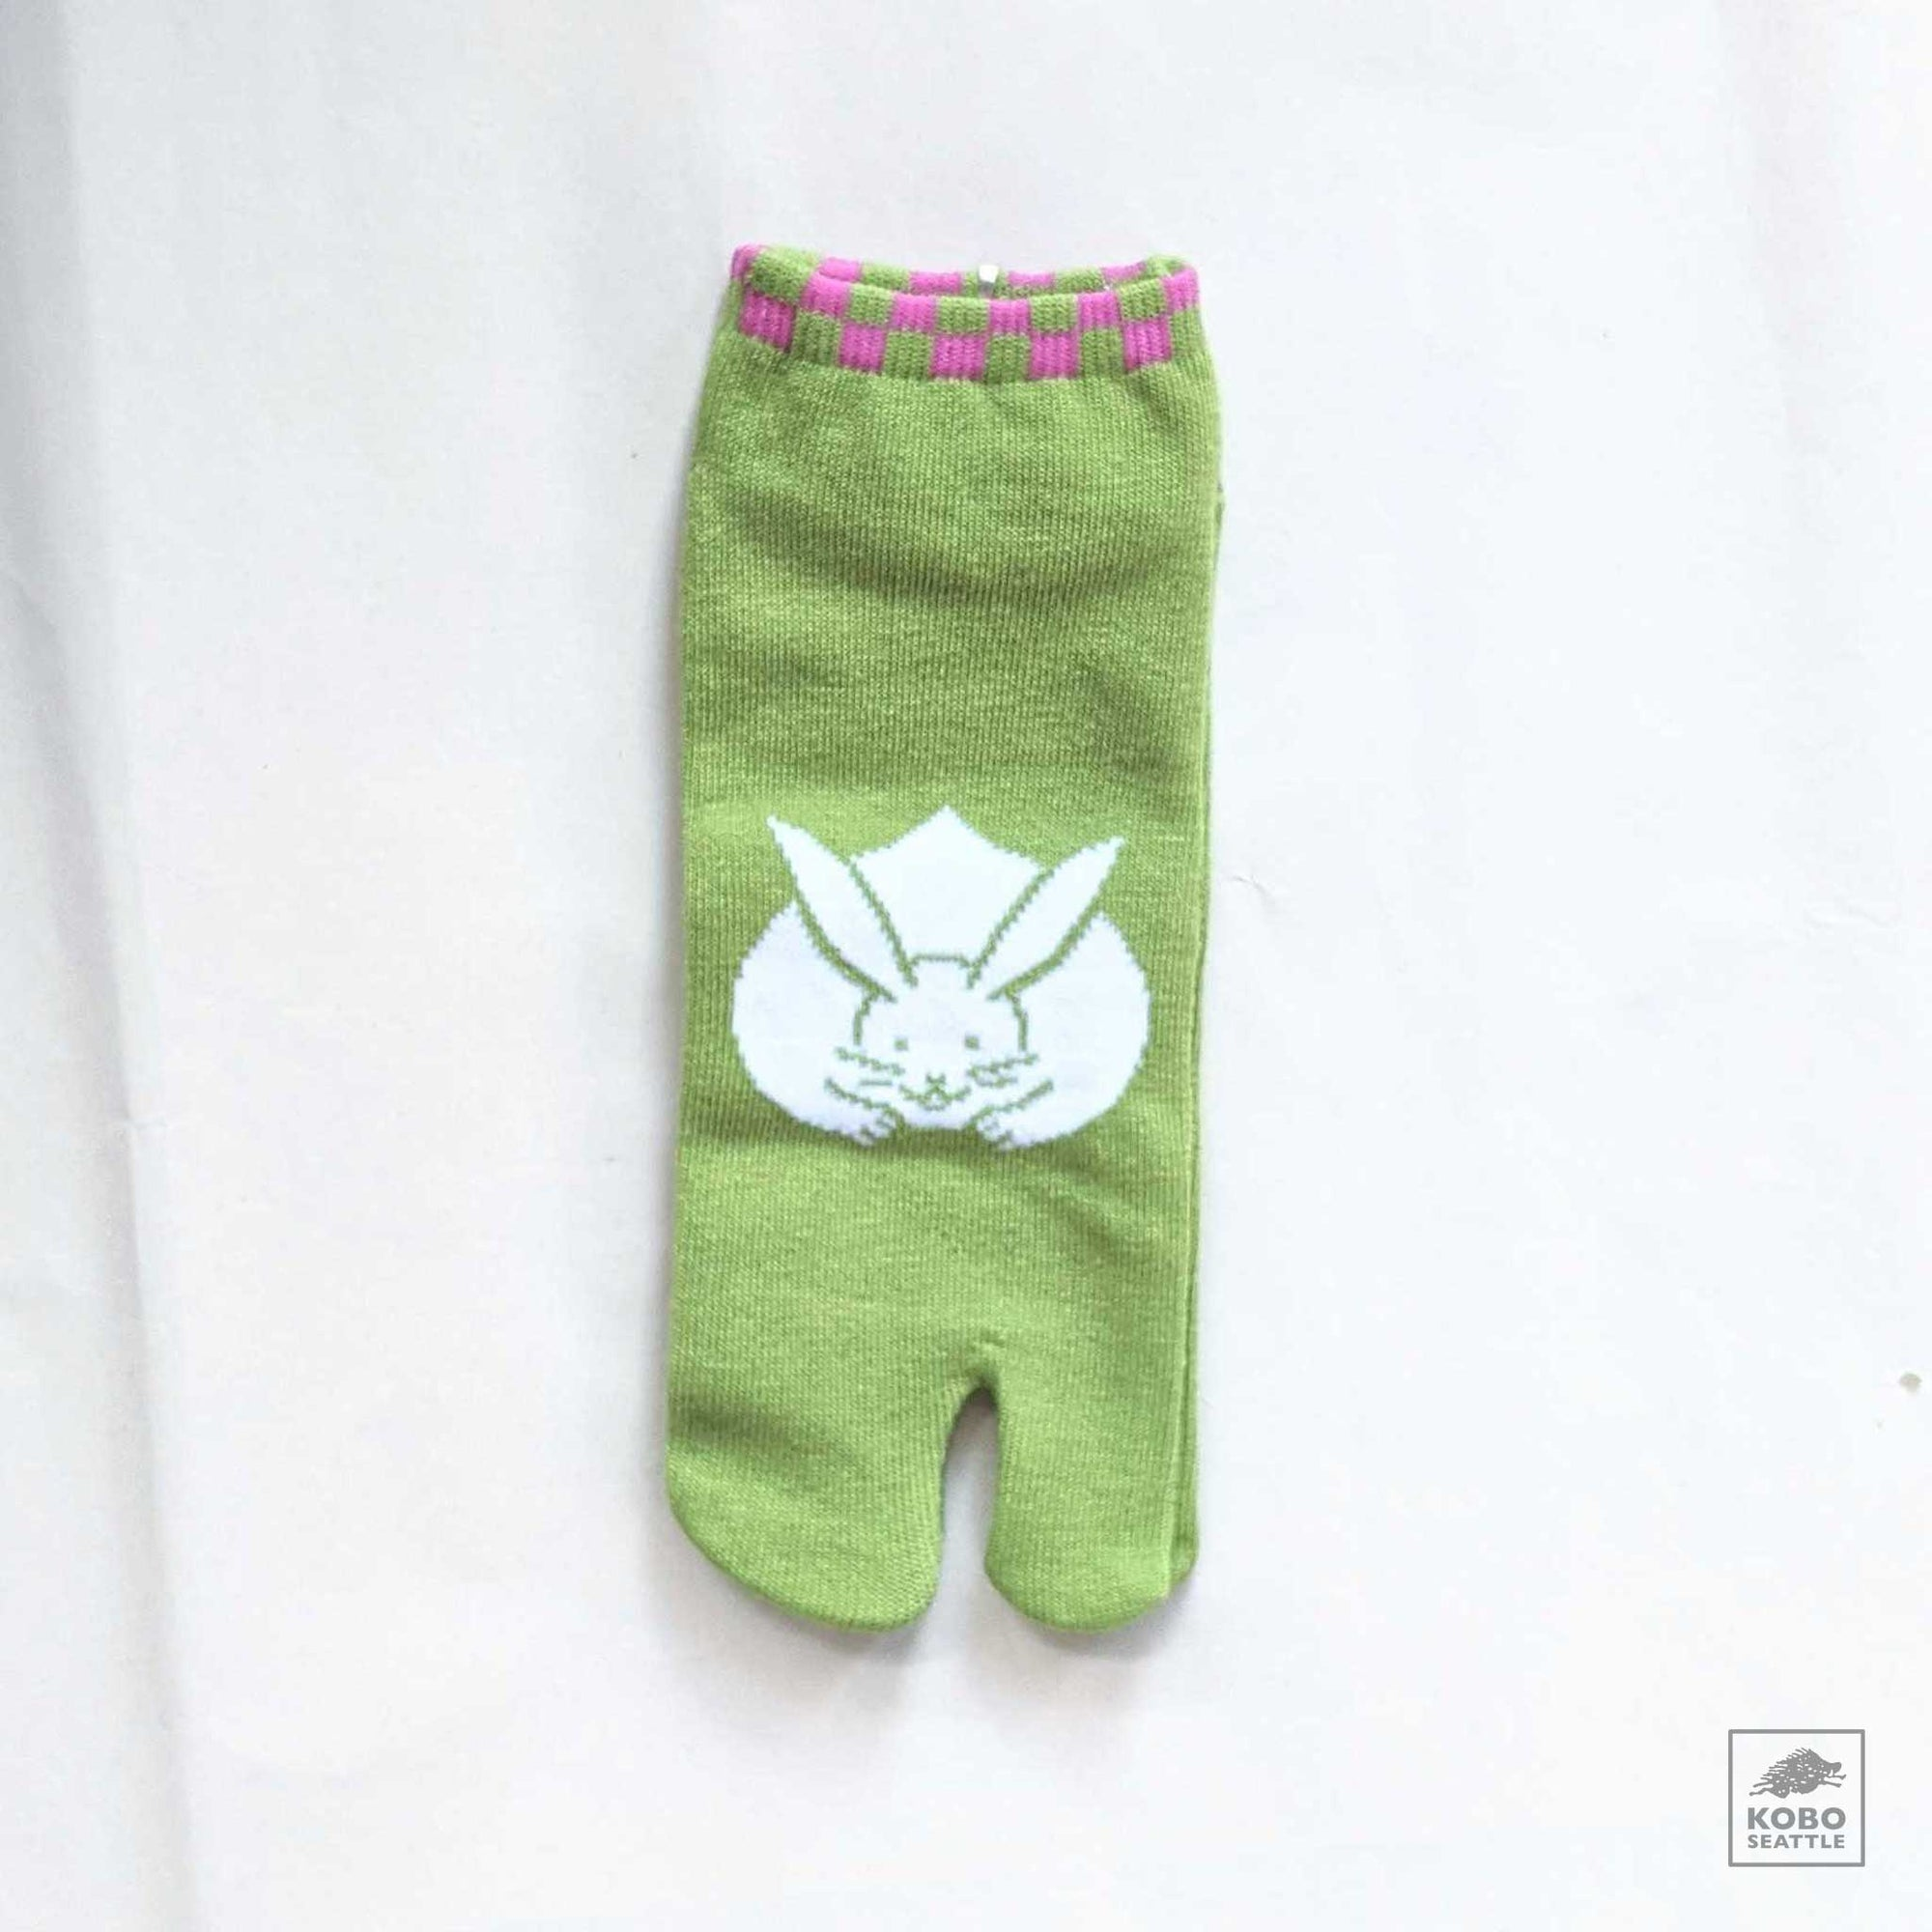 Tabi Ankle Socks M/L - Usagi on Green